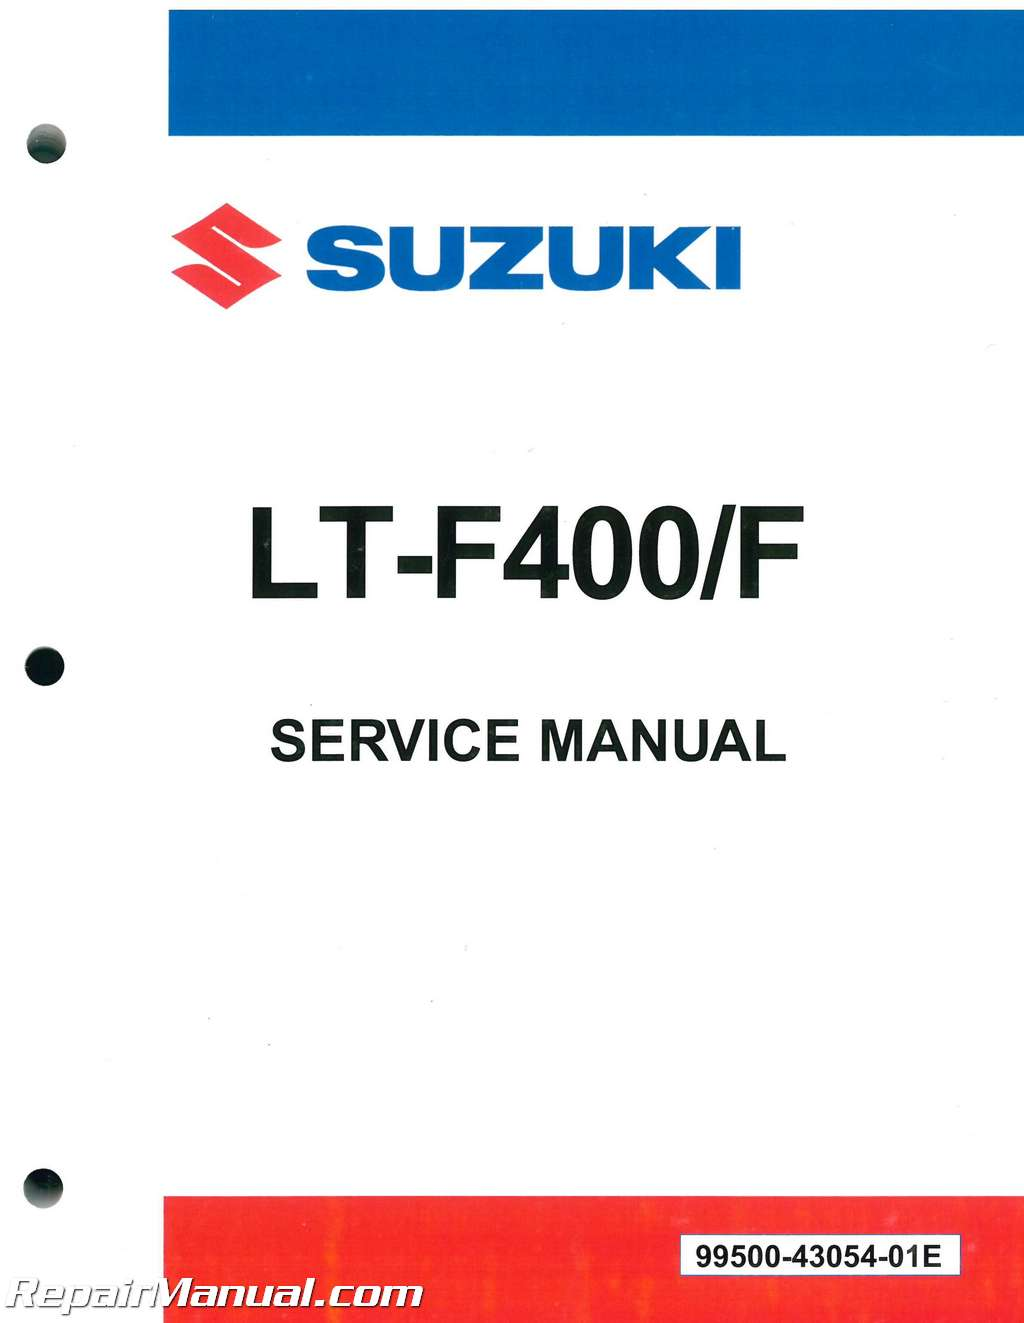 ... Array - suzuki eiger 400 manual official factory repair information  auto rh nottingham edu de tyrann